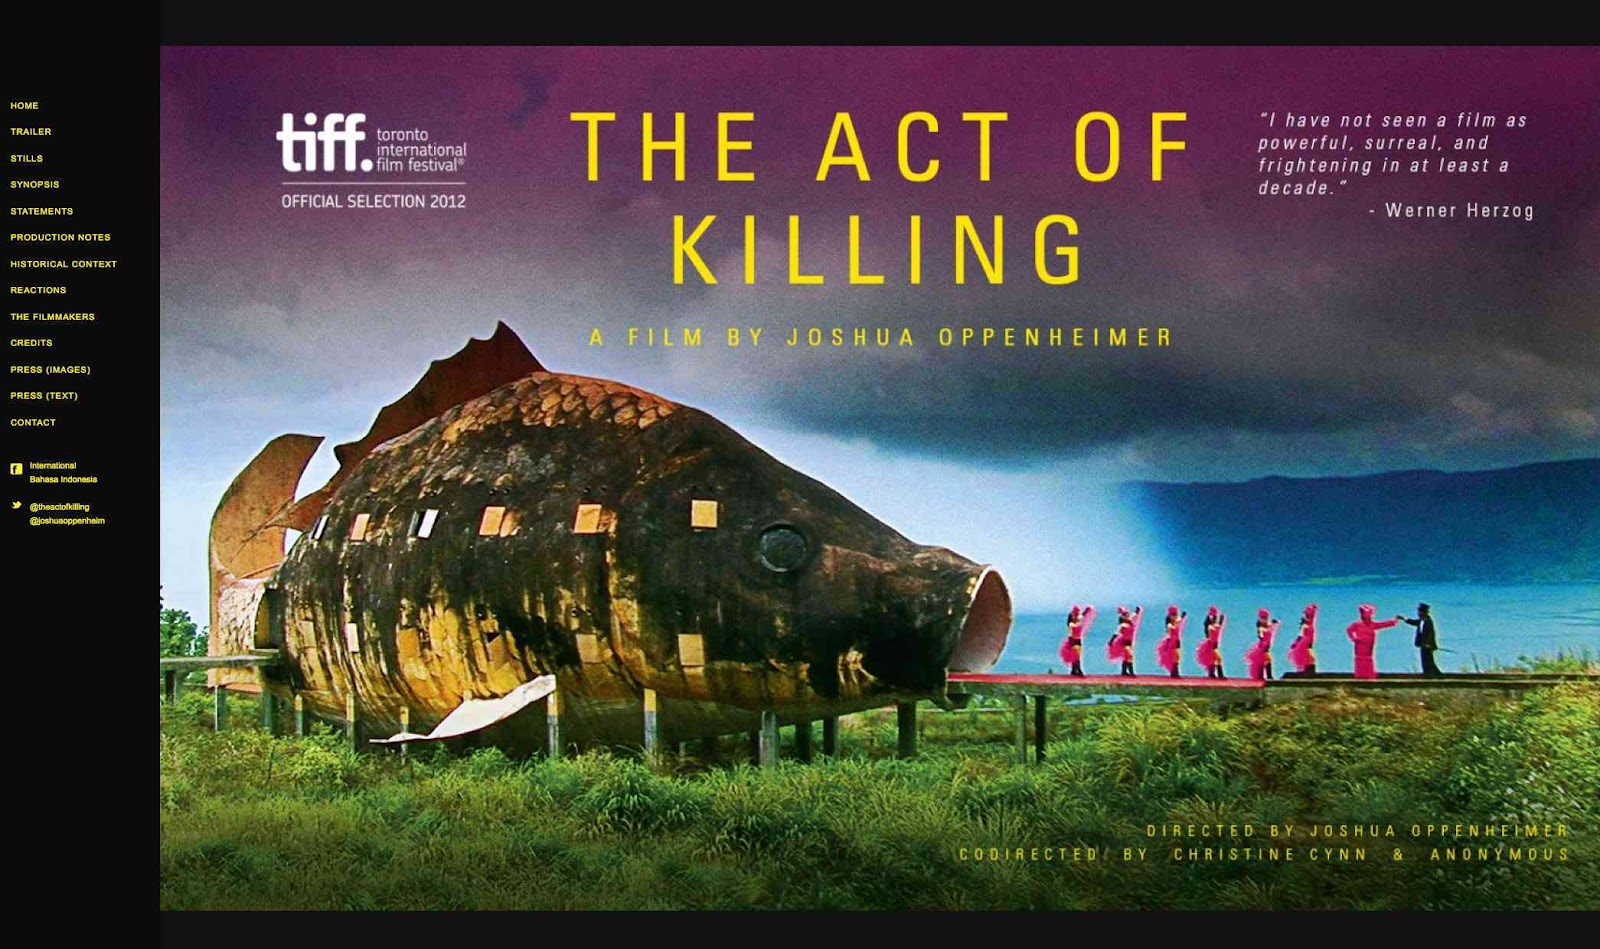 a review of the documentary the act of killing The act of killing, review   image 1 of 3 a song-and-dance number from the documentary 'the act of killing' image 1 of 3 an impossibly kitsch scene from 'the act of killing.